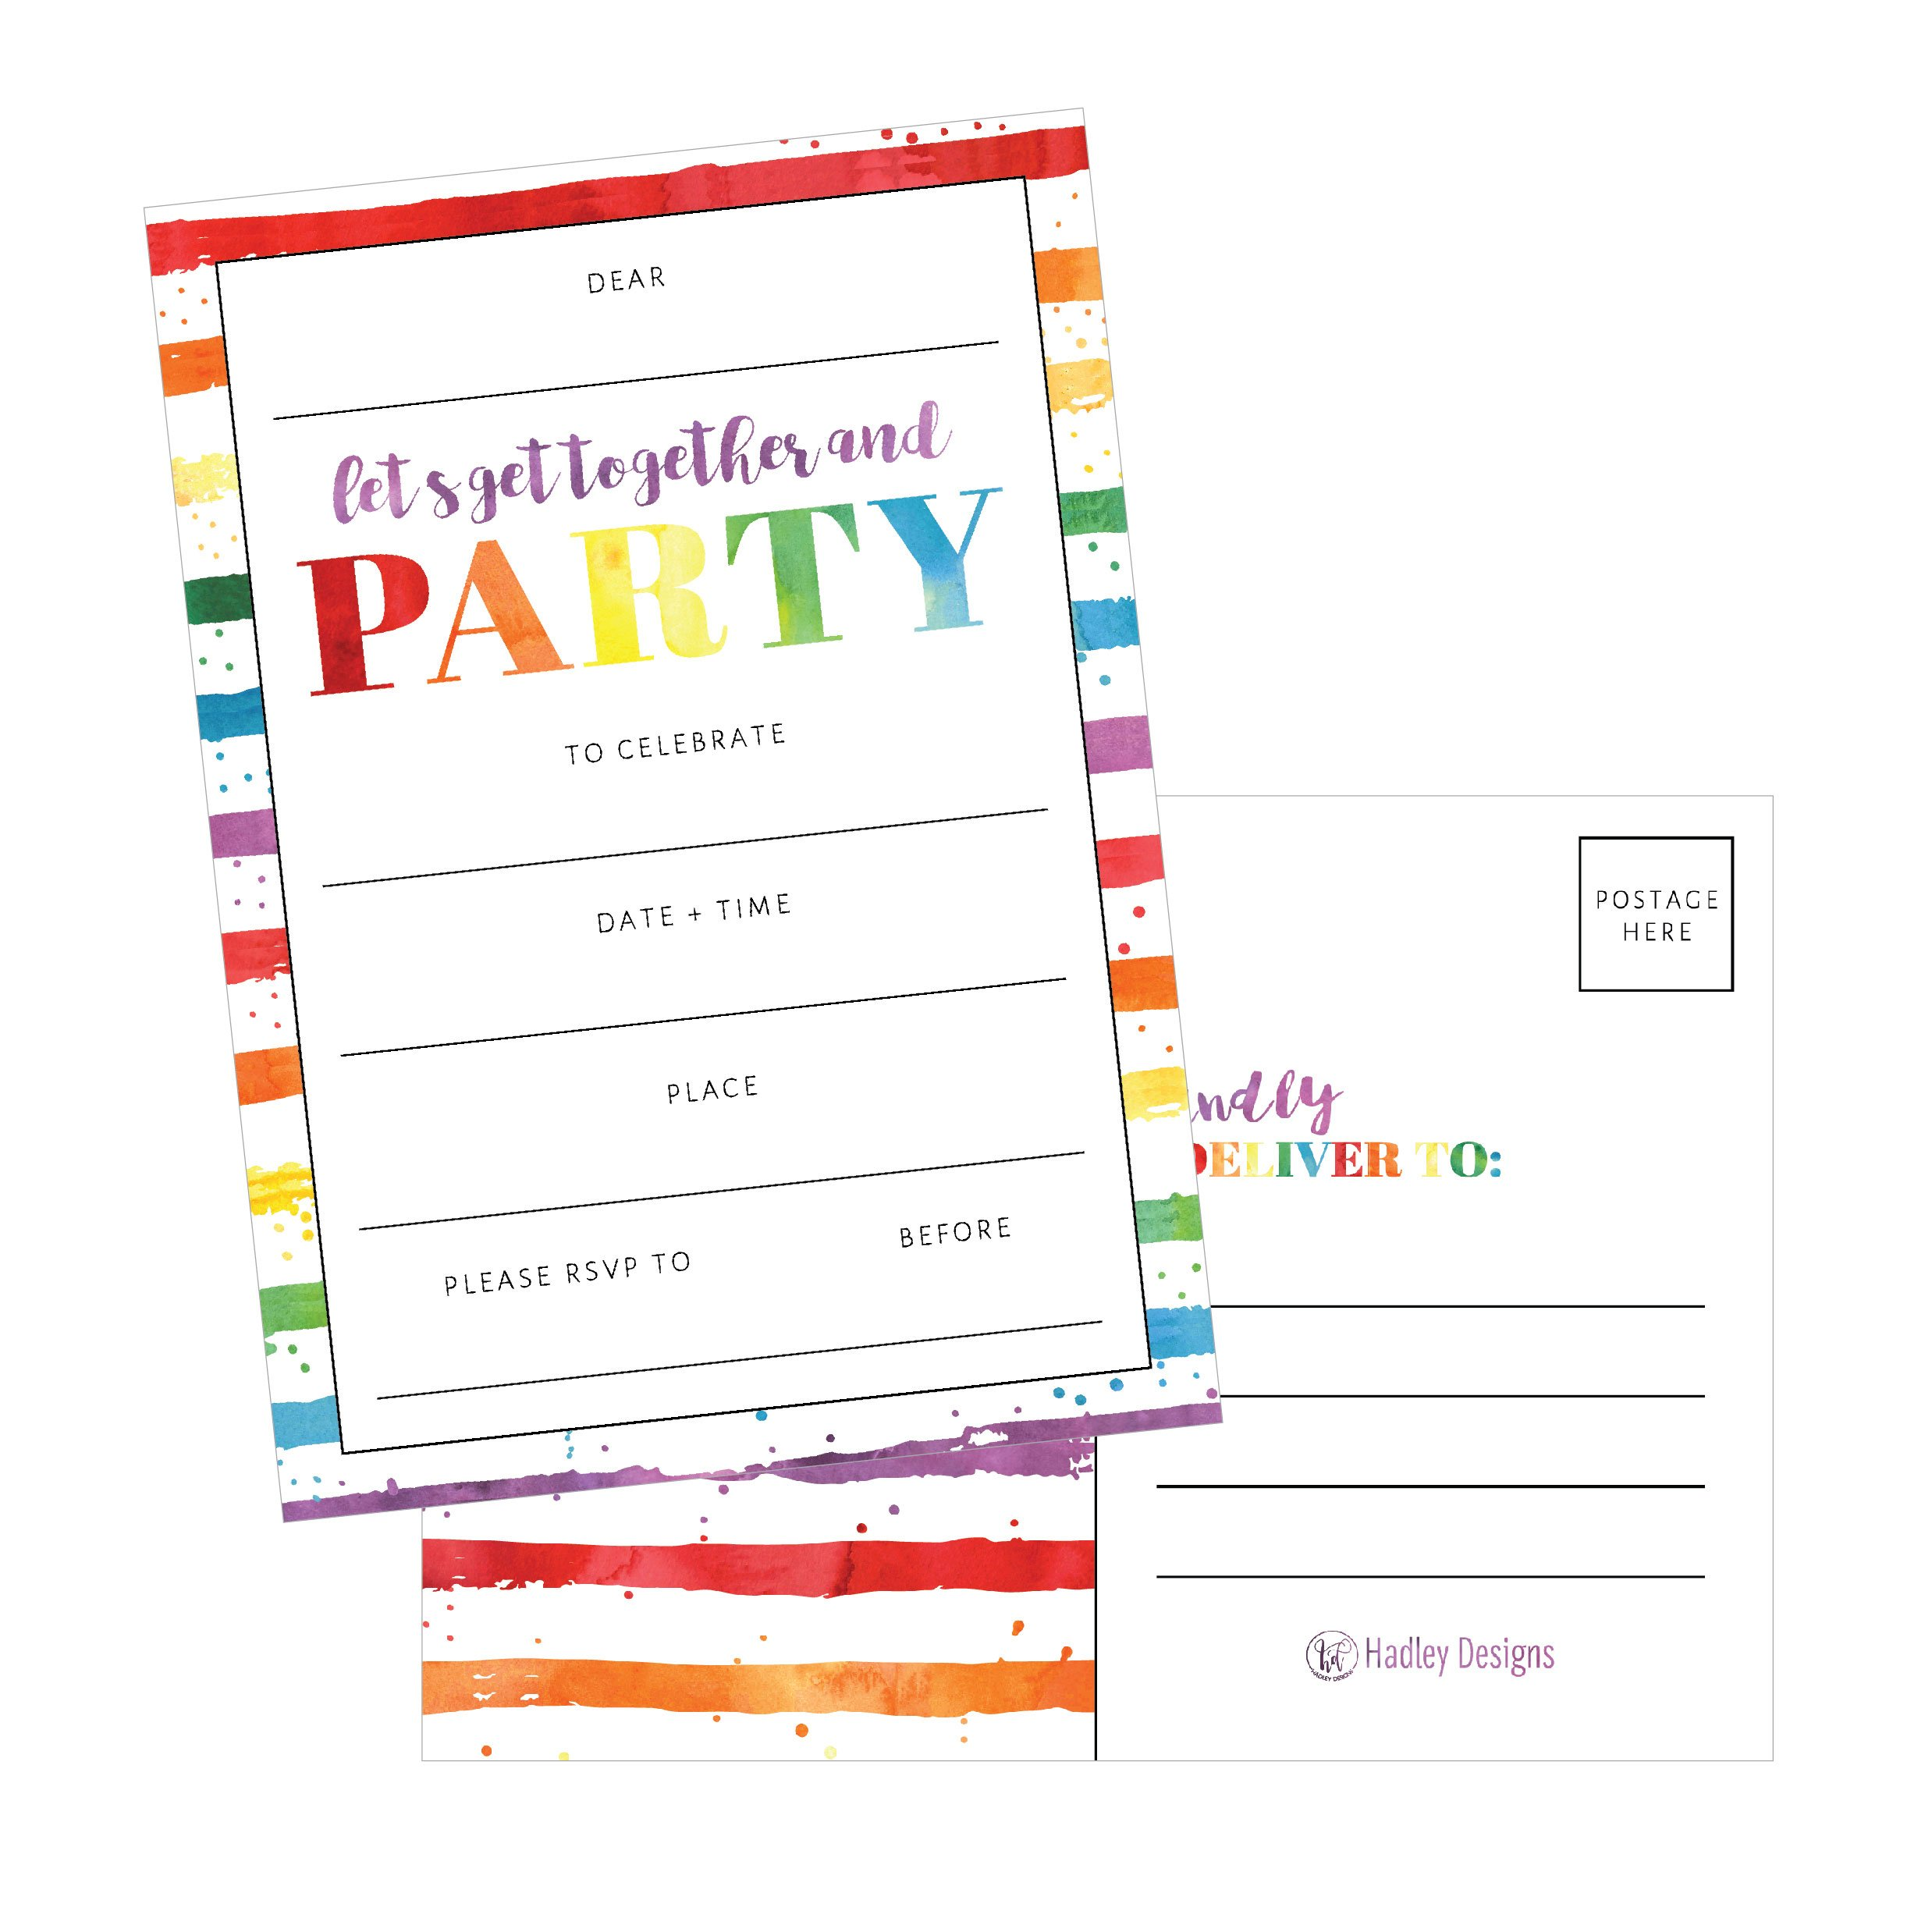 25 Art Stripe Rainbow Party Invitations for Kids, Teens, Adults, Boys & Girls, Blank Children Happy 1st Birthday Invitation Cards, Unique Baby First Bday Invites Toddler 1 2 3 Year Old Invites Fill In